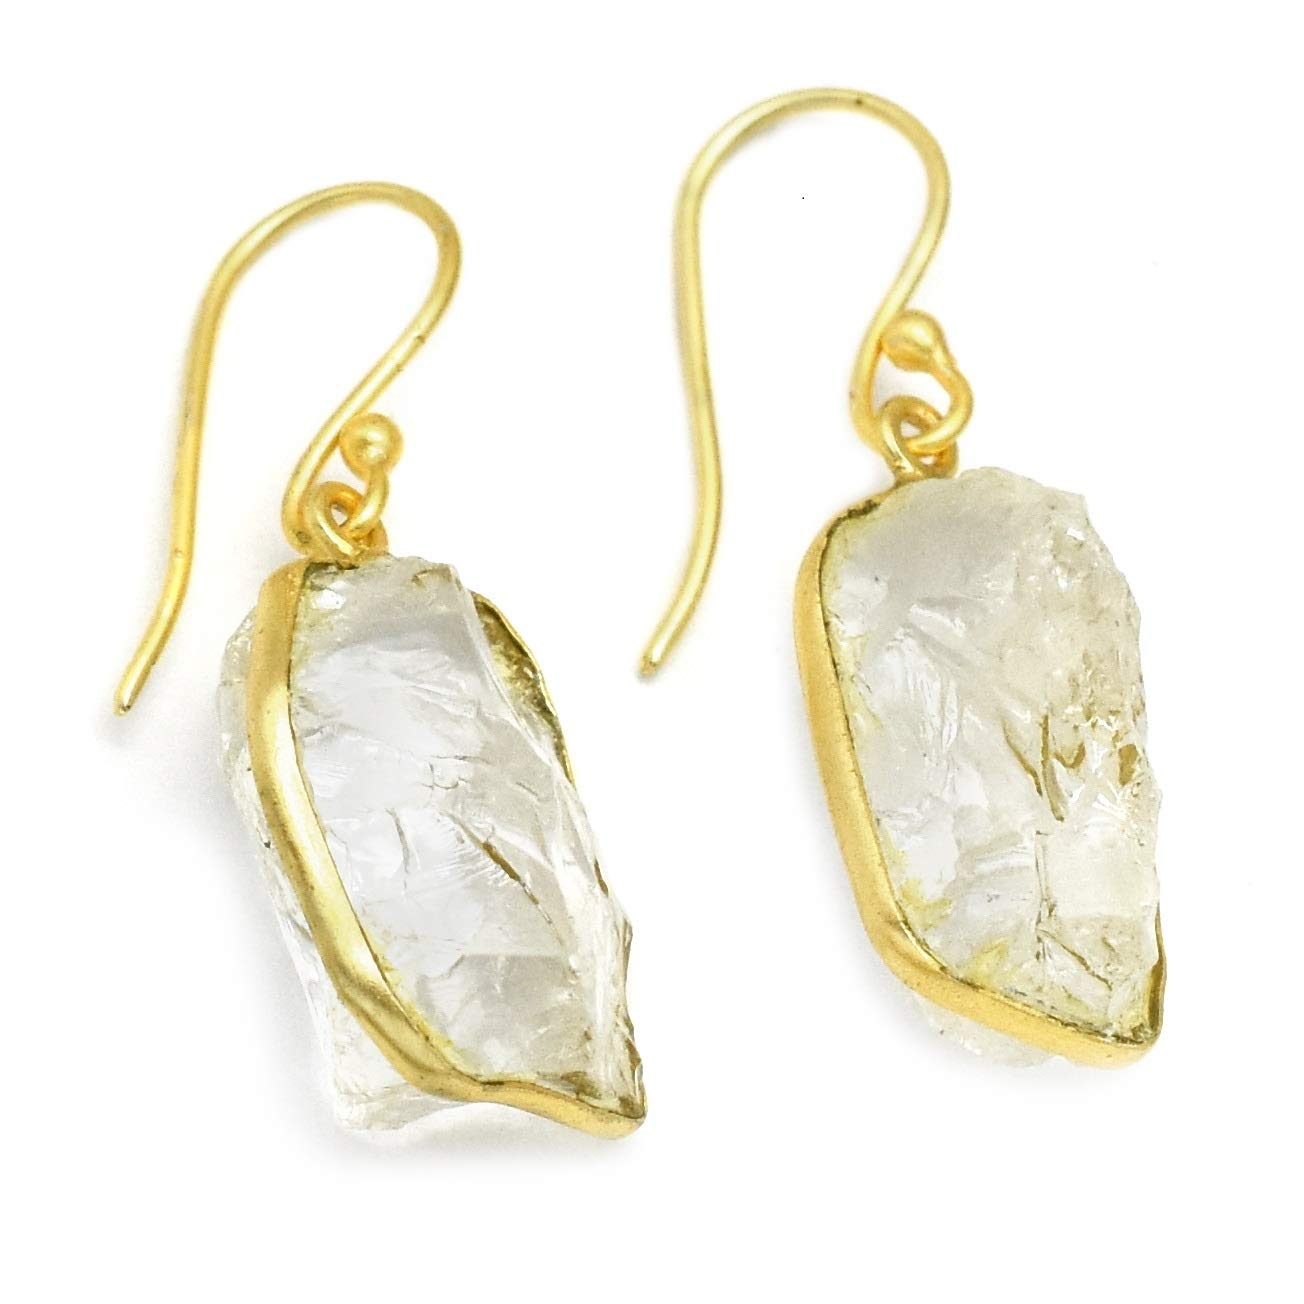 The V Collection earrings uneven shape yellow gold plated crystal handmade dangling earrings gifts for her